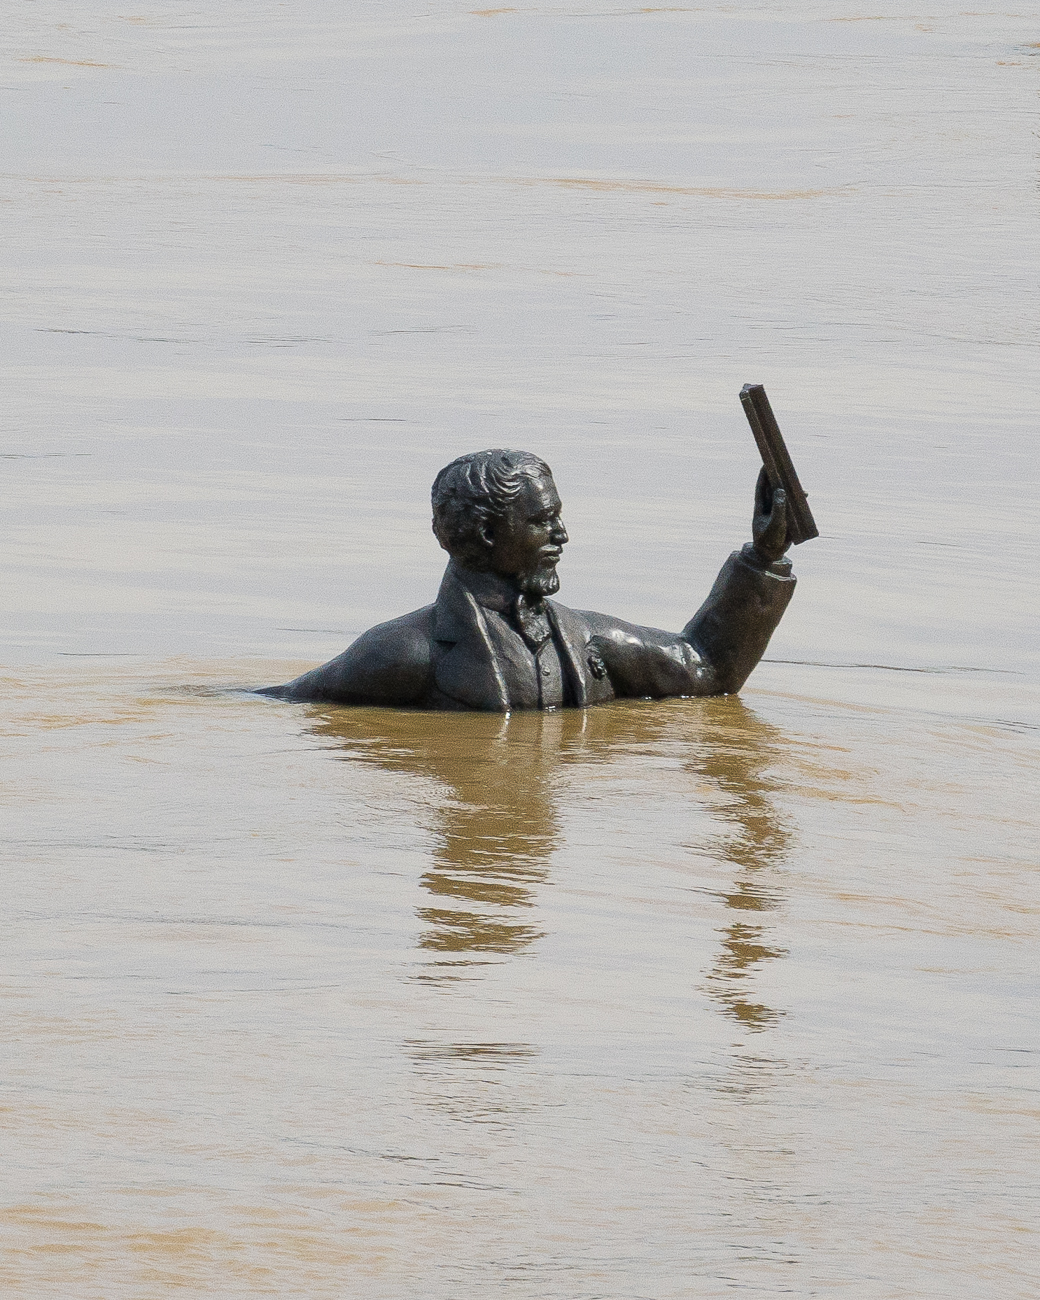 The John Roebling statue in Covington almost completely underwater / Image: Phil Armstrong, Cincinnati Refined // Published: 2.26.18